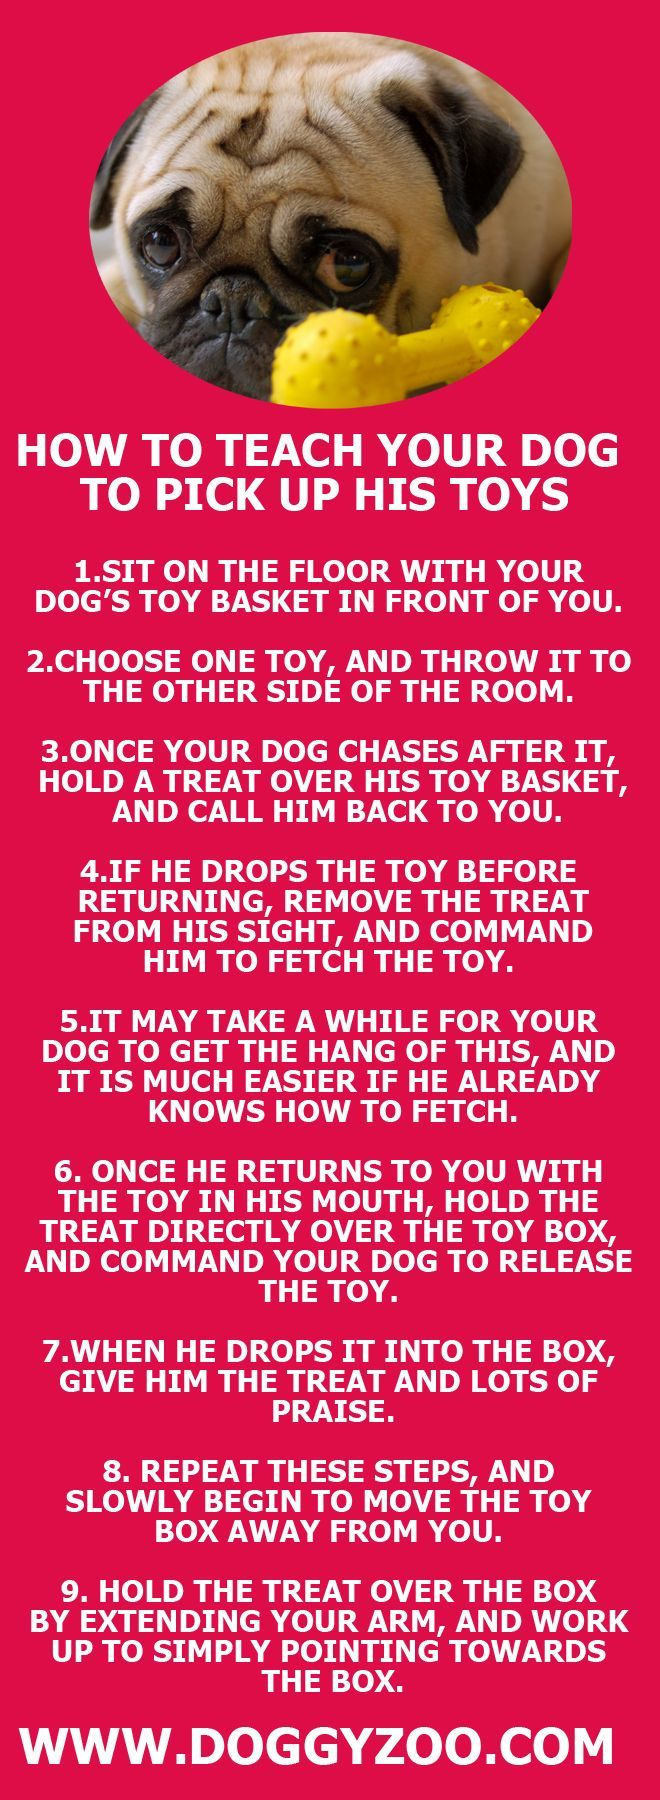 Hmmm, this looks interesting! How to teach your dog to pick up his toys... http://www.poochportal.com/category/dog-training/